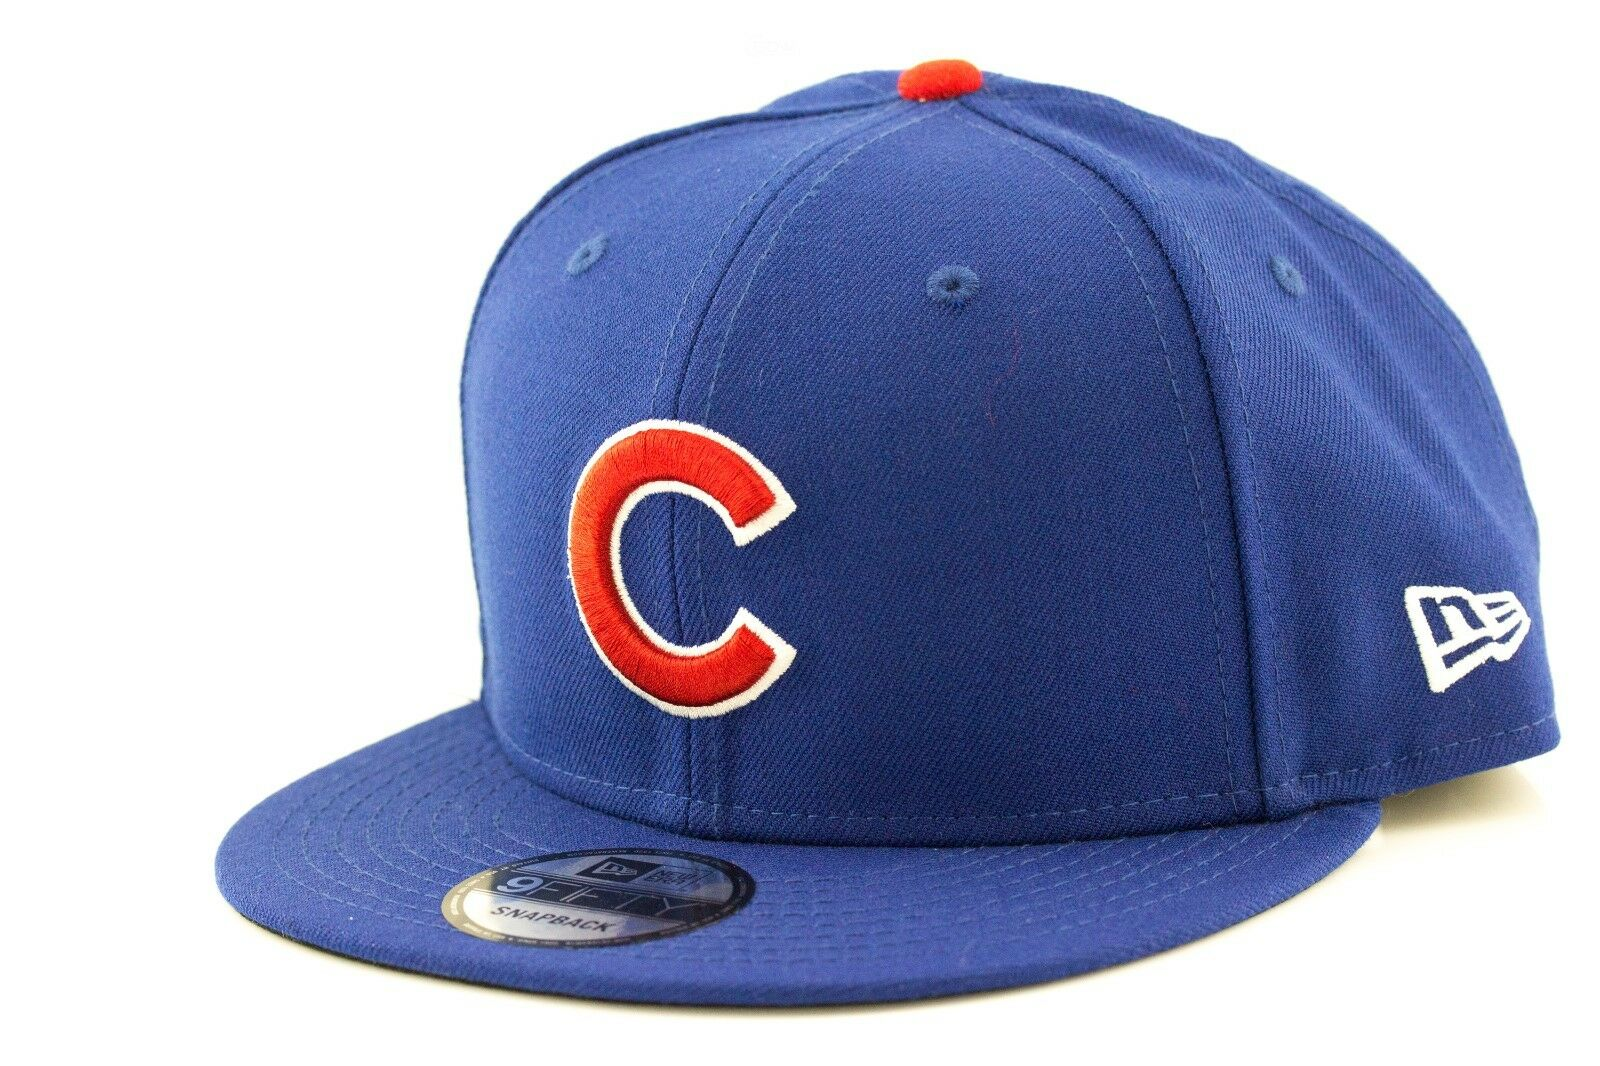 competitive price 6c6bc 3d598 ... where to buy chicago cubs new era mlb team 9fifty snapback hat genuine baseball  cap new